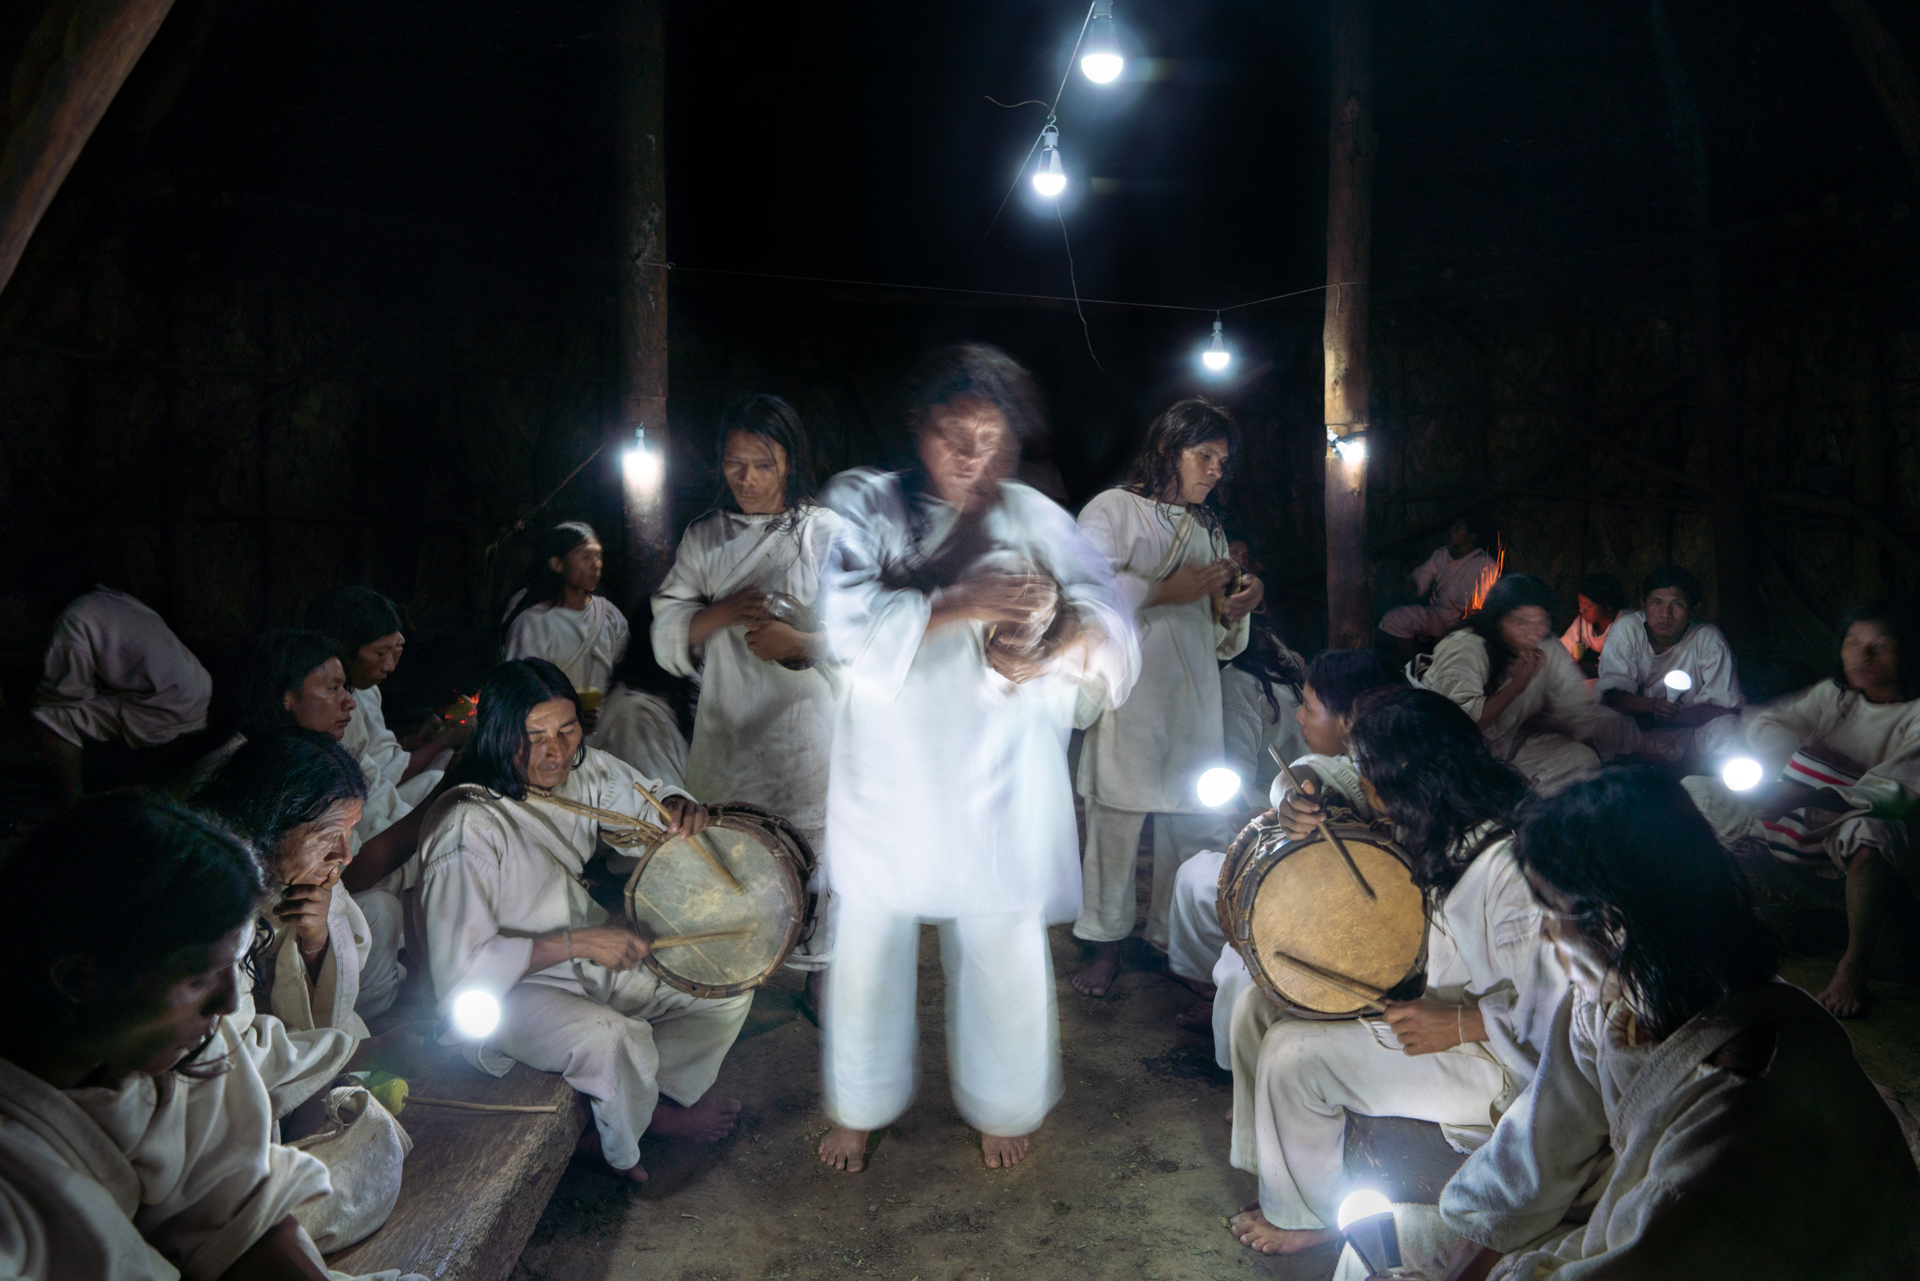 Kogui men play music during a Cualama ceremony at night in 'la Casa Maria' a meeting space for men only in Waniyacka community. Cualama is a 10 day ritual which happens twice a year, in April and June paying honor to the change in season, mother nature and asking for abundant rains for a good harvest. This community made up of 55 homes within Colombia's La Guajira, all have solar panels as they are too remote to be connected to the grid. The Kogi meaning ÔJaguarÕ are an indigenous ethnic group living in ColombiaÕs Sierra Nevada, deeply rooted in their belief that people and nature are one. They understand the Earth to be a living being and see humanity as its ÔÕchildrenÕÕ. They are unique among Latin AmericaÕs indigenous cultures because the Spaniards never conquered them. They represent the most complete surviving civilization of pre-Colombian America.